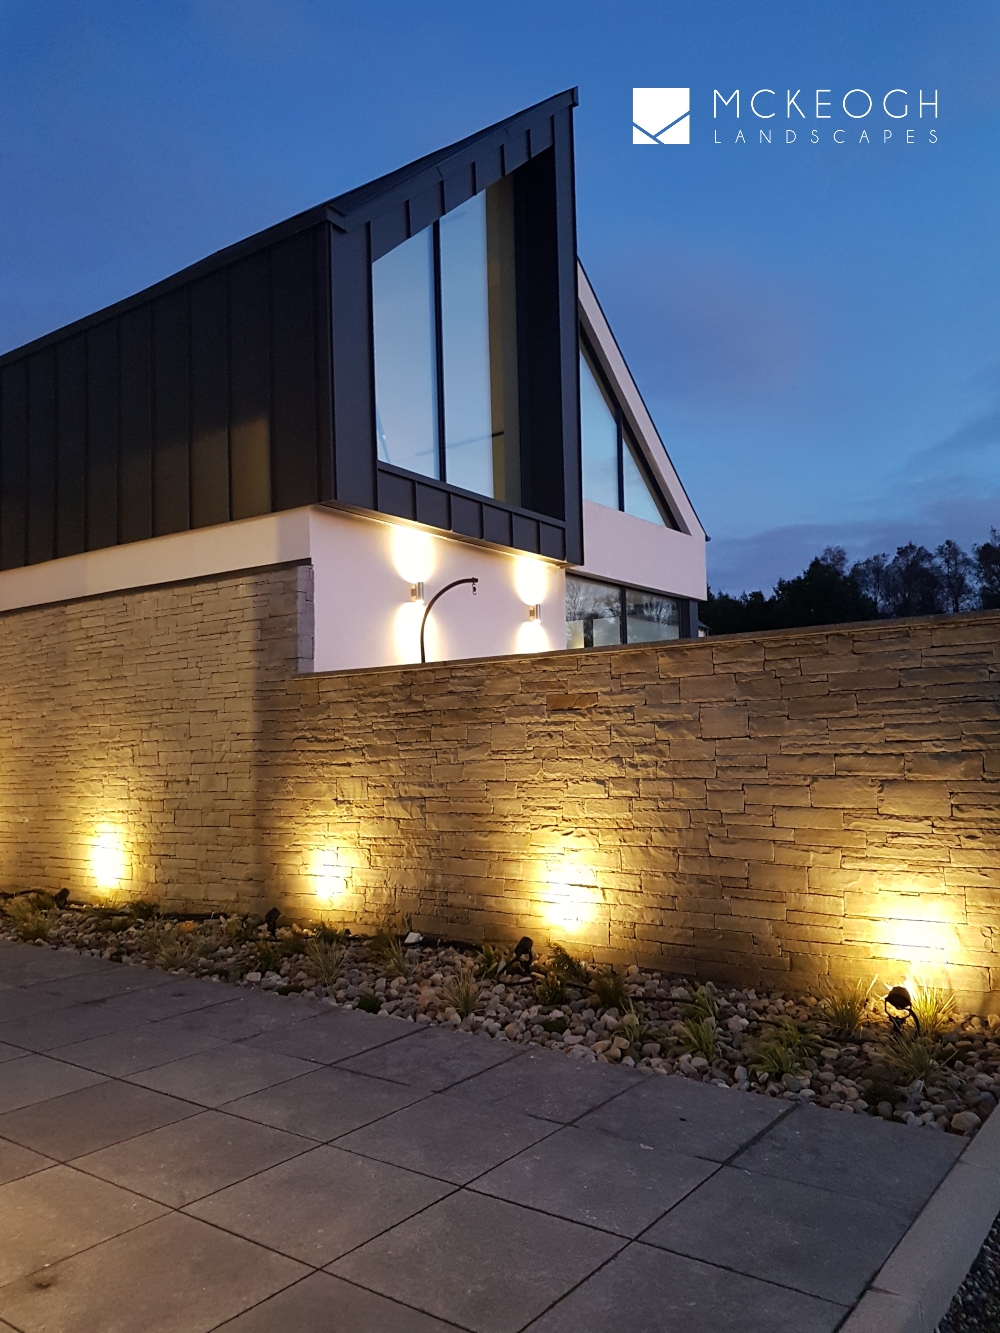 Liscannor-stone-wall-lighting-planting-clare